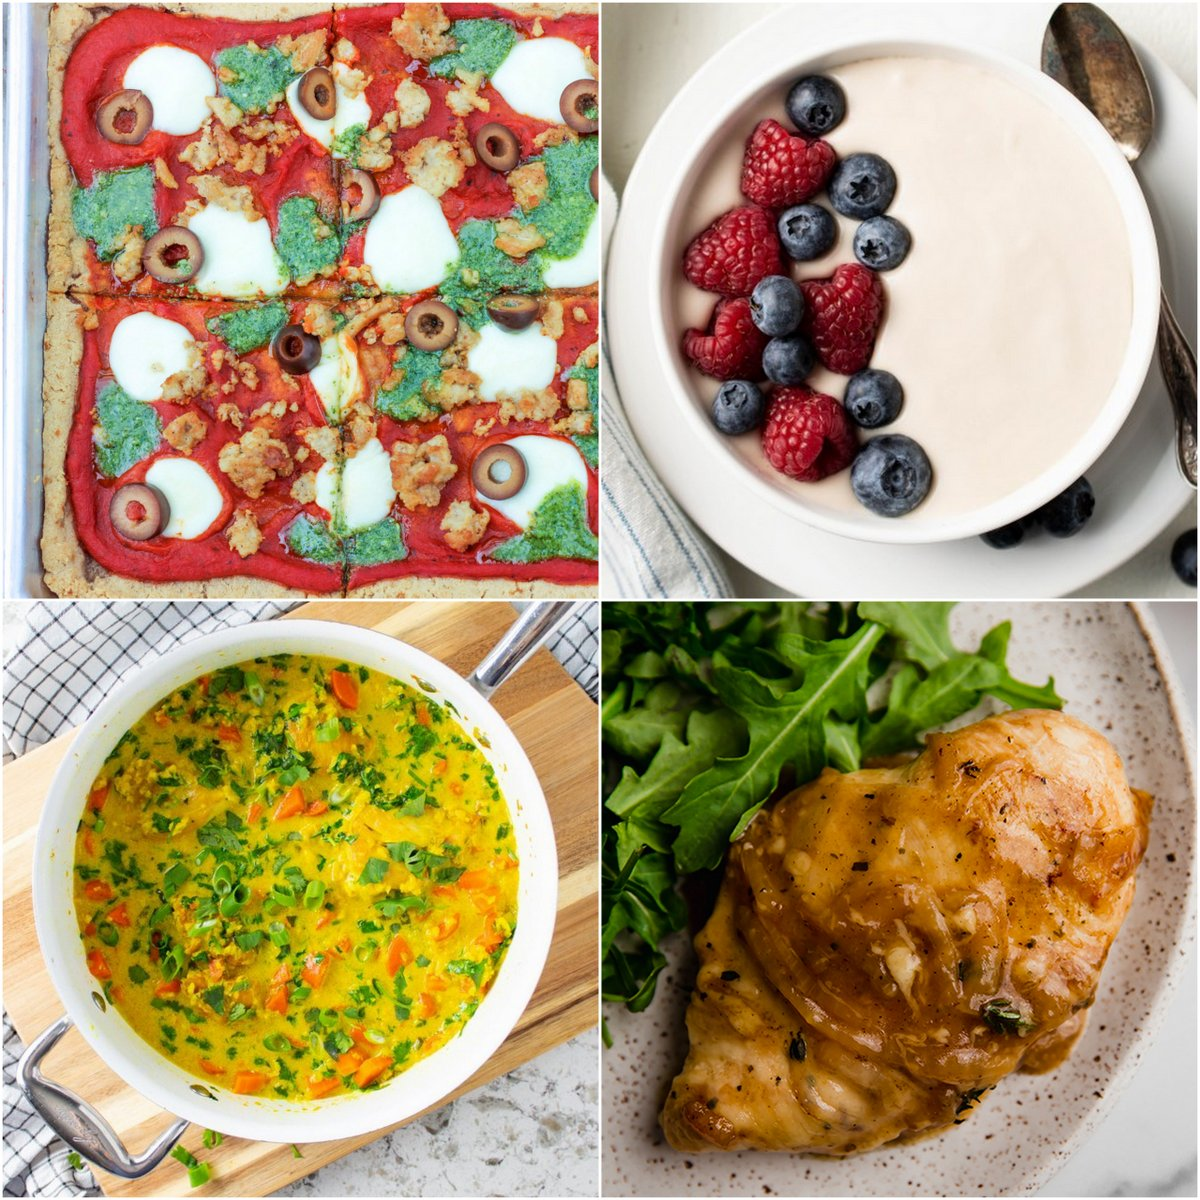 Paleo AIP Recipe Roundtable #366   Phoenix Helix - *Featured Recipes: Sheet Pan Pizza, Vanilla Faux-gurt, French Onion Chicken, and One-Pot Turmeric Chicken and Cauli-Rice.